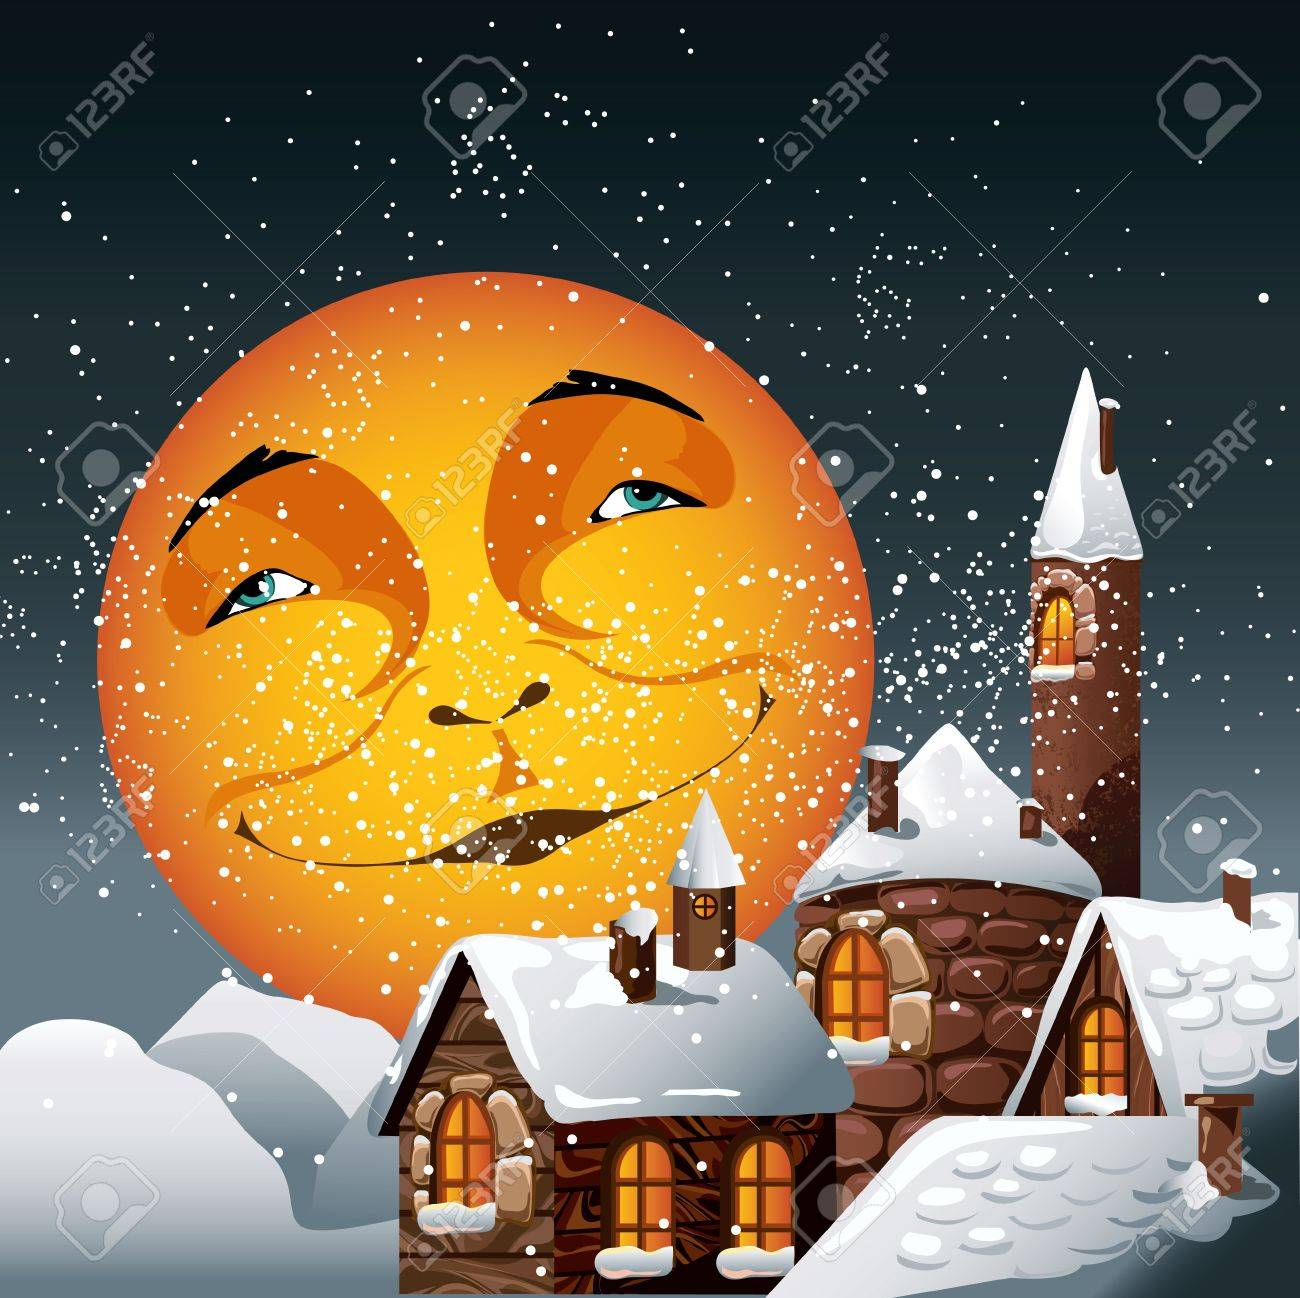 Christmas illustration of smiling moon and snowy town Stock Vector - 15873555